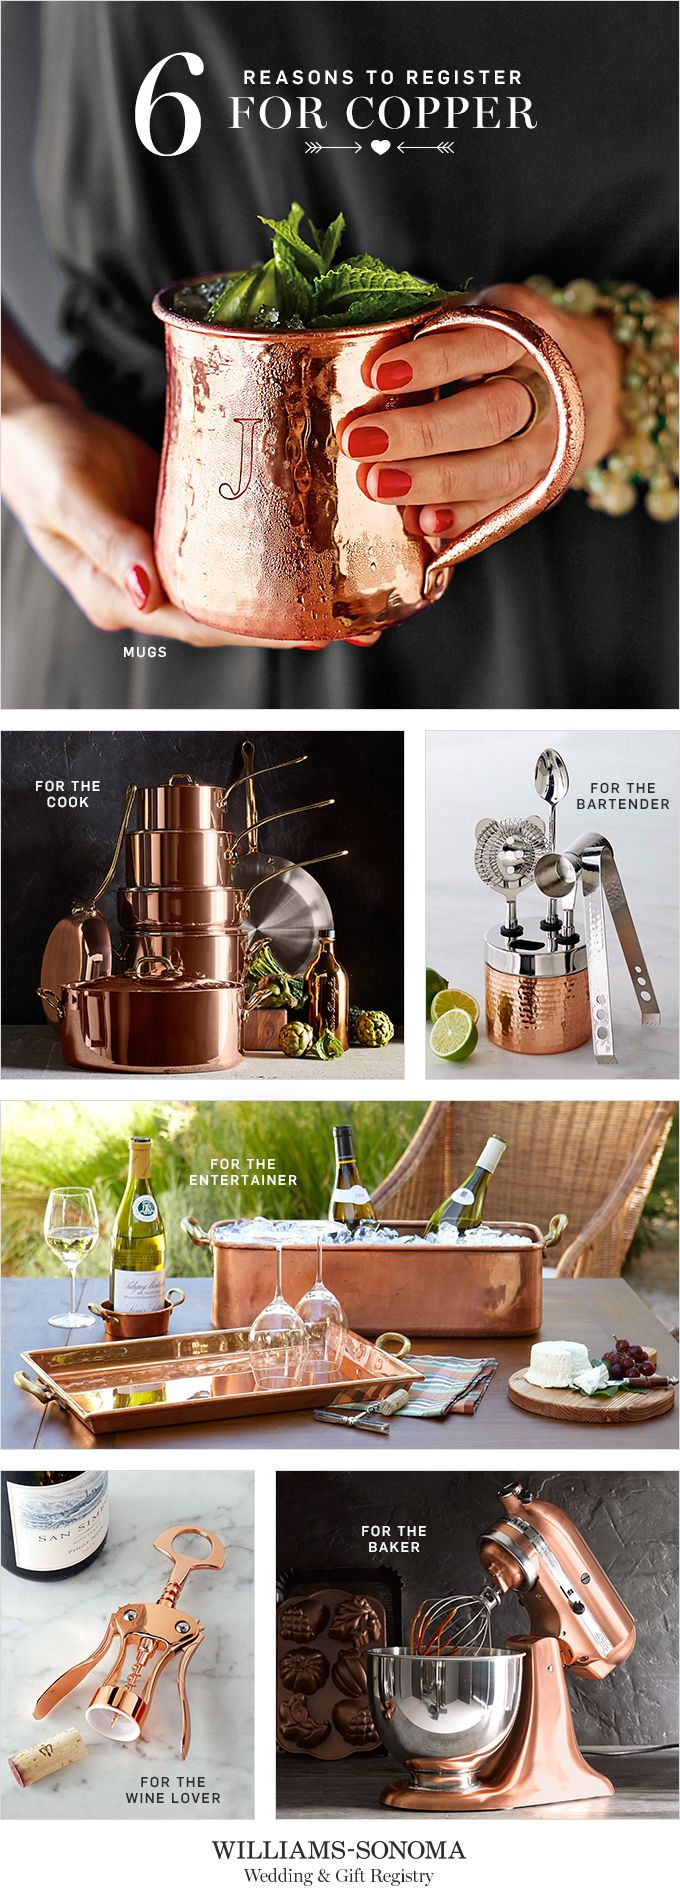 Create A Registry At Williams Sonoma And You Ll Automatically Be Entered For A Chance To Win Copper Kitchen Home Bridal Gift Registry